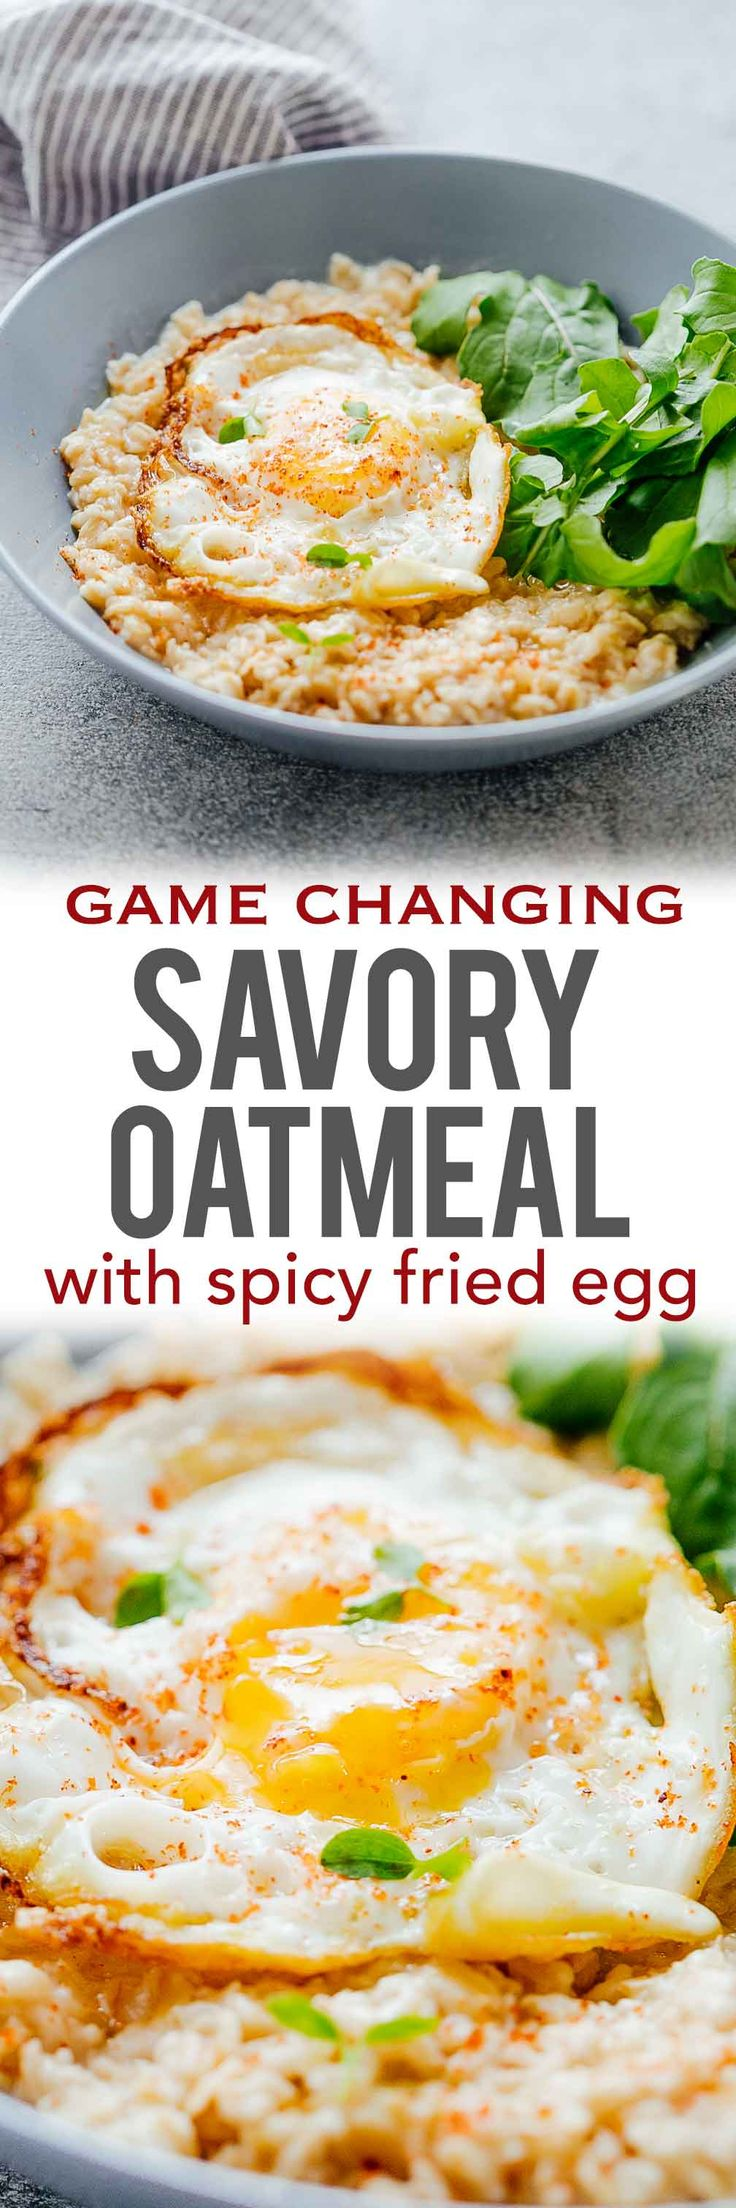 These savory garlic oats with a masala fried egg are healthy, delicious and a great way to switch up breakfast when you are bored of regular sweet oatmeal. The runny yolk adds a gorgeous creaminess and the crispy edges add crunch. Make it a breakfast salad bowl with mixed greens or toss it up with some spices for a really satisfying breakfast. via @my_foodstory